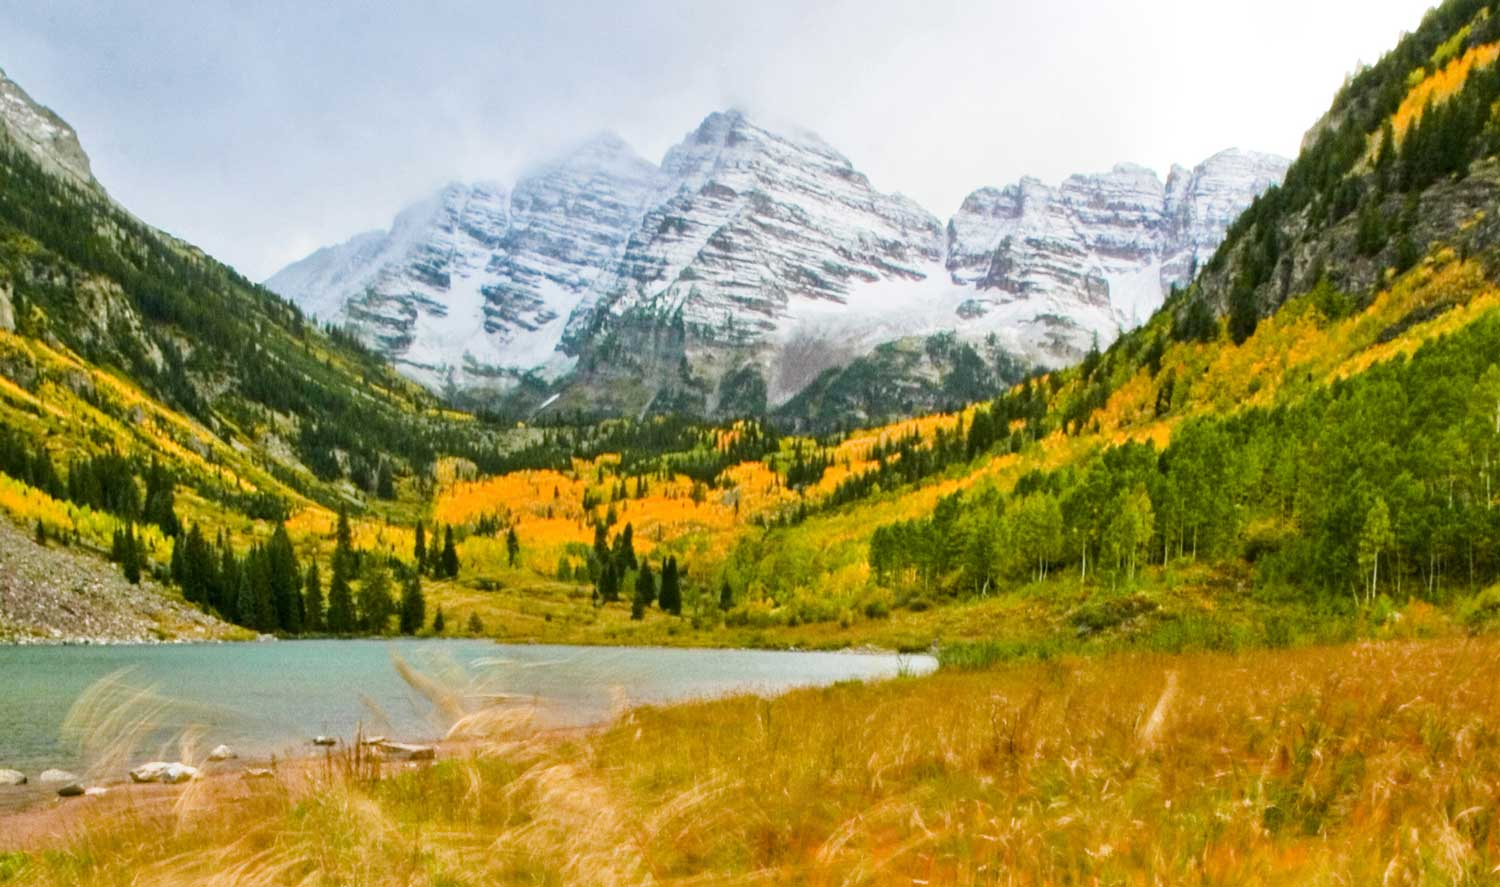 "The ""most photographed mountains in North America"" shine their brightest in the fall. That's when a stand of aspens at their base turns bright yellow blanketing their feet. Get up there now. But beware, it's also the most popular time to visit the Maroon Bells. Either ride your bike or take the shuttle, which runs from Aspen Highlands from 8 a.m. to 5 p.m. daily, for $8. After hours, guests can drive their own vehicles up as well."